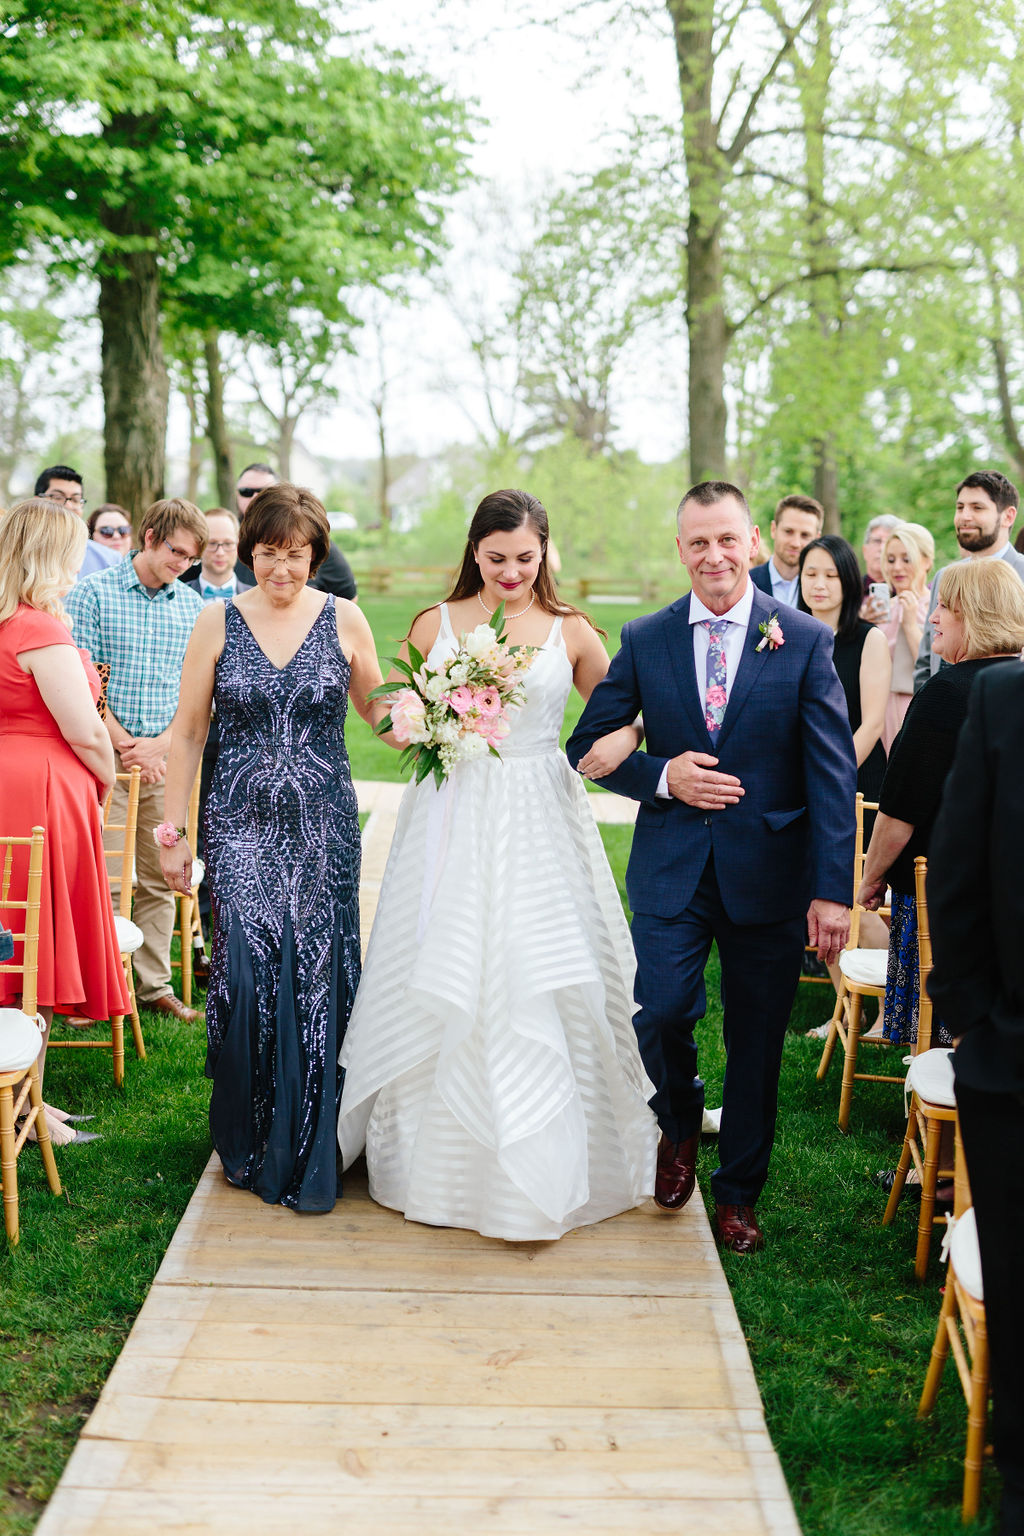 Bride walking down the aisle with her parents - Preppy spring wedding at Zingerman's Cornman Farms - Leah E. Moss Designs - photo by Katie Grace Photography